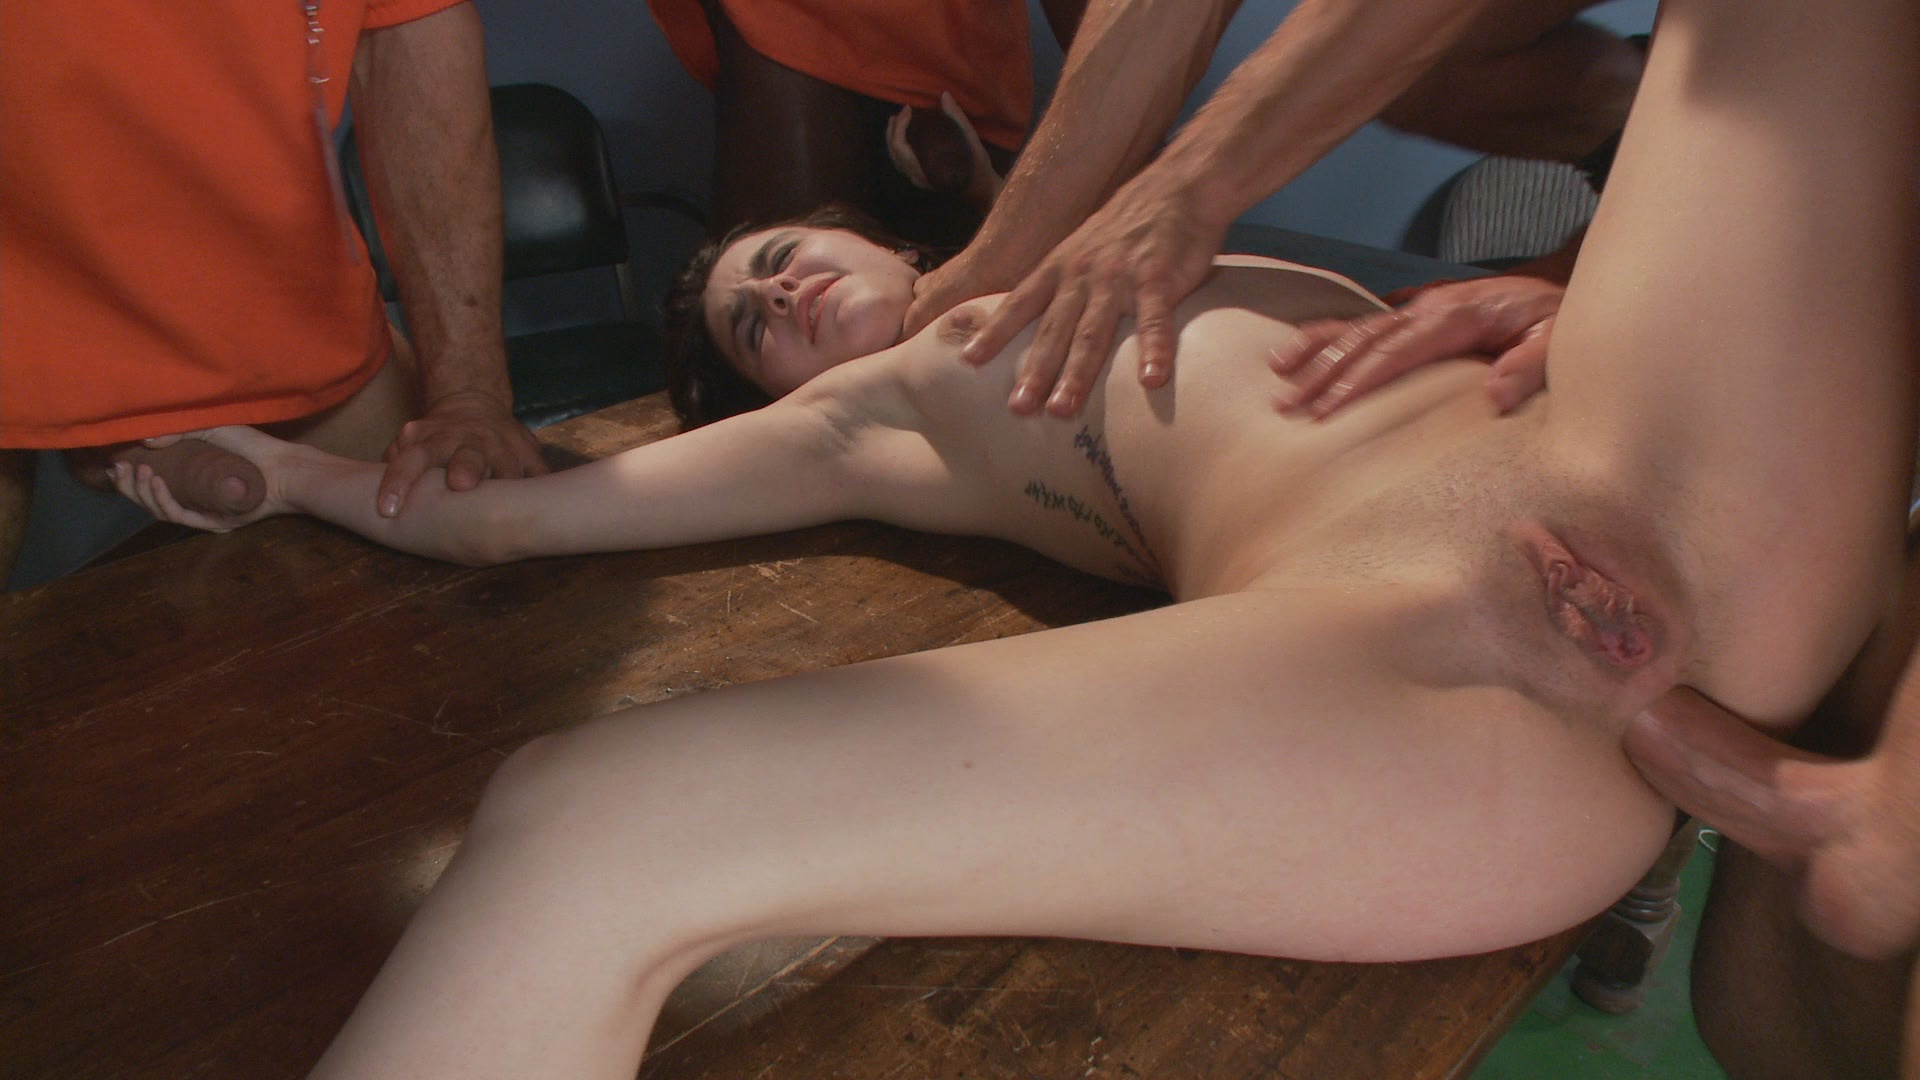 Bound Gangbangs: Prison Outreach Program xvideos175736